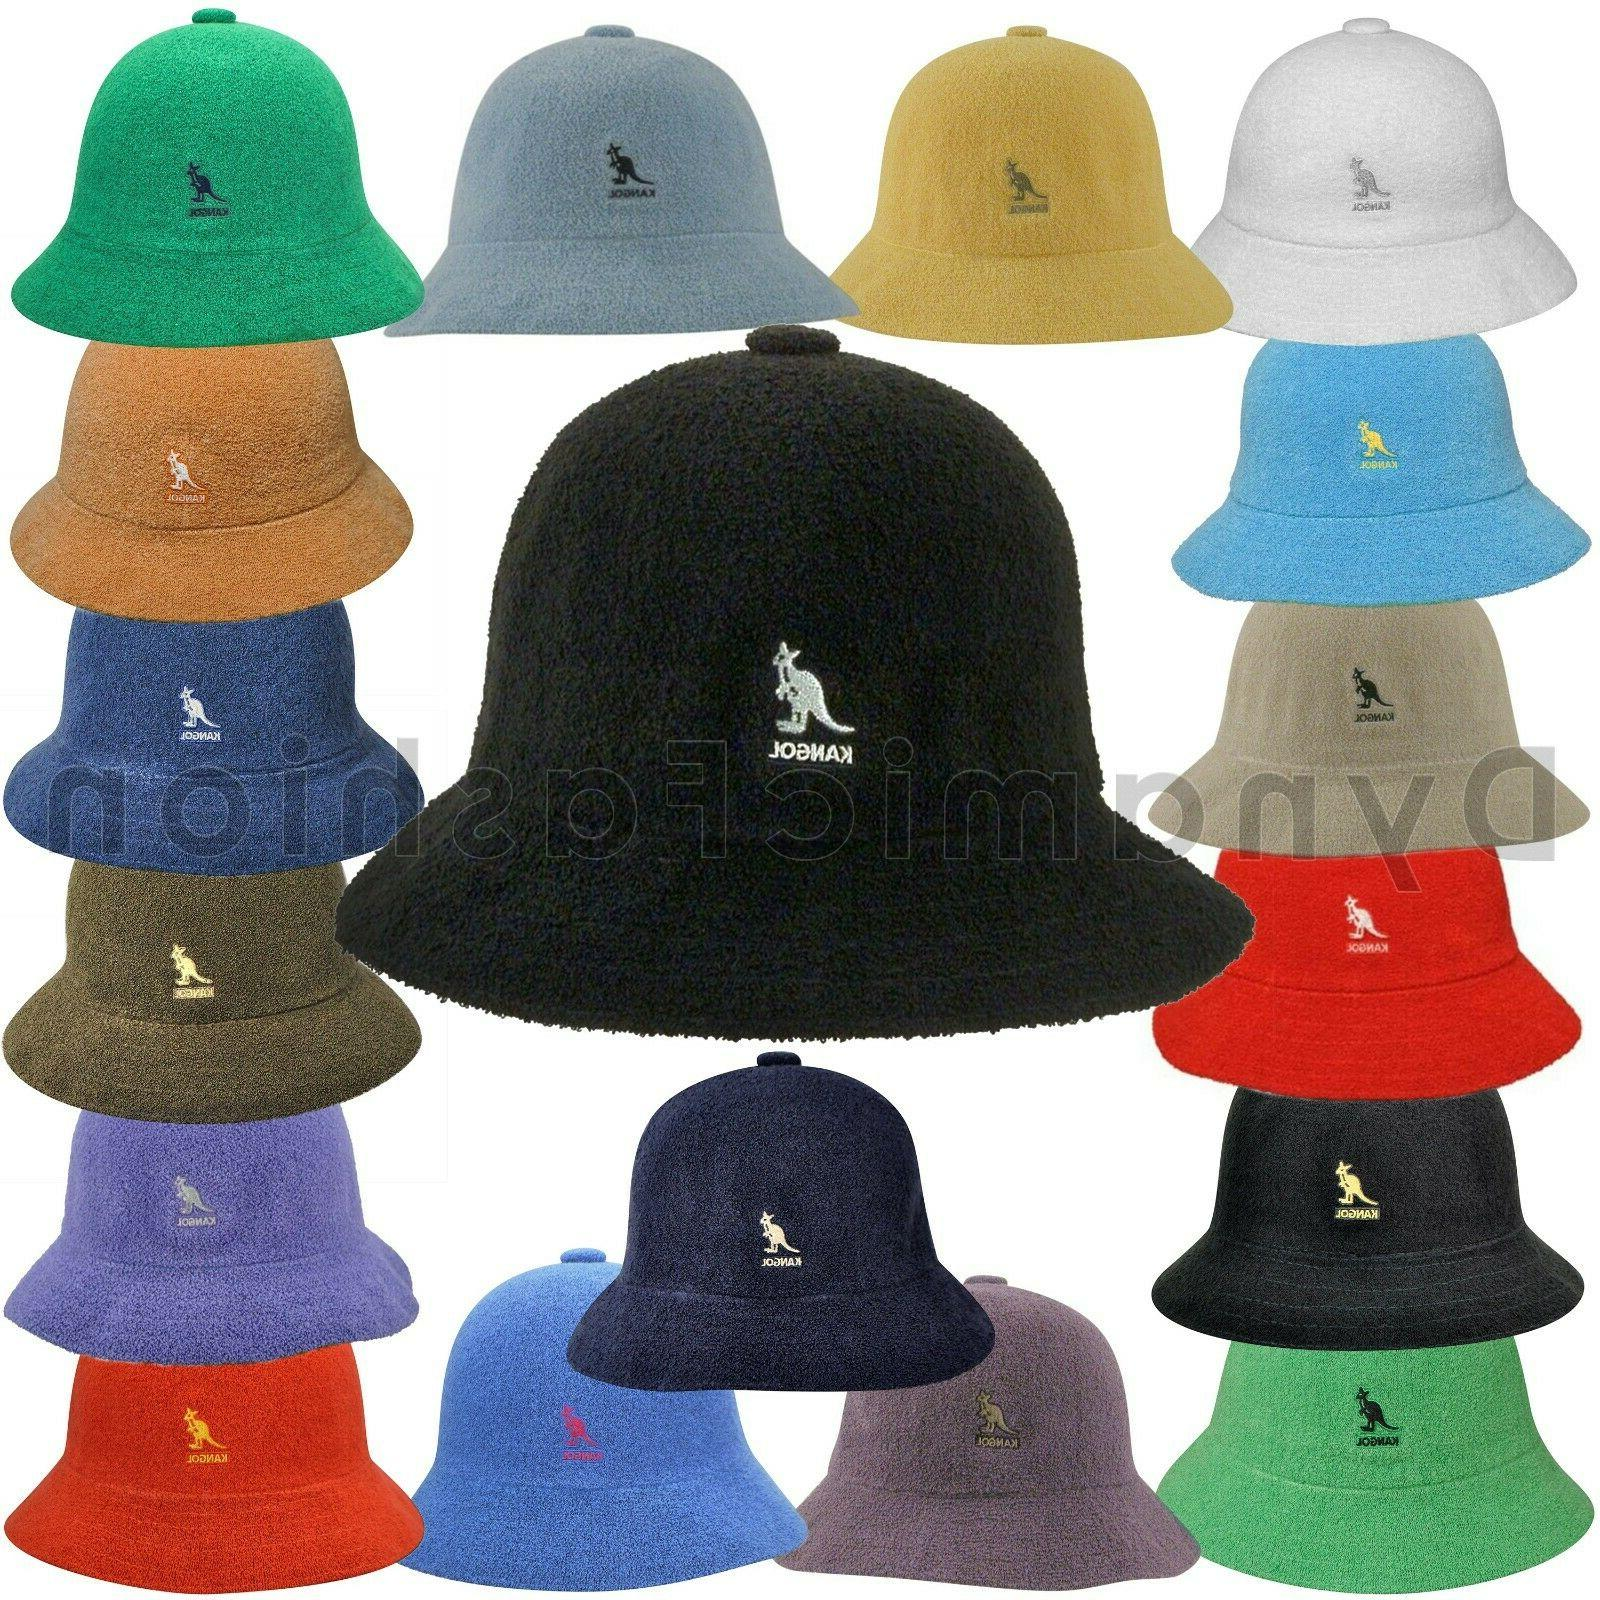 c7336fa9e6e90 Authentic KANGOL Bermuda Casual Bucket Cap Hat 0397BC Sizes